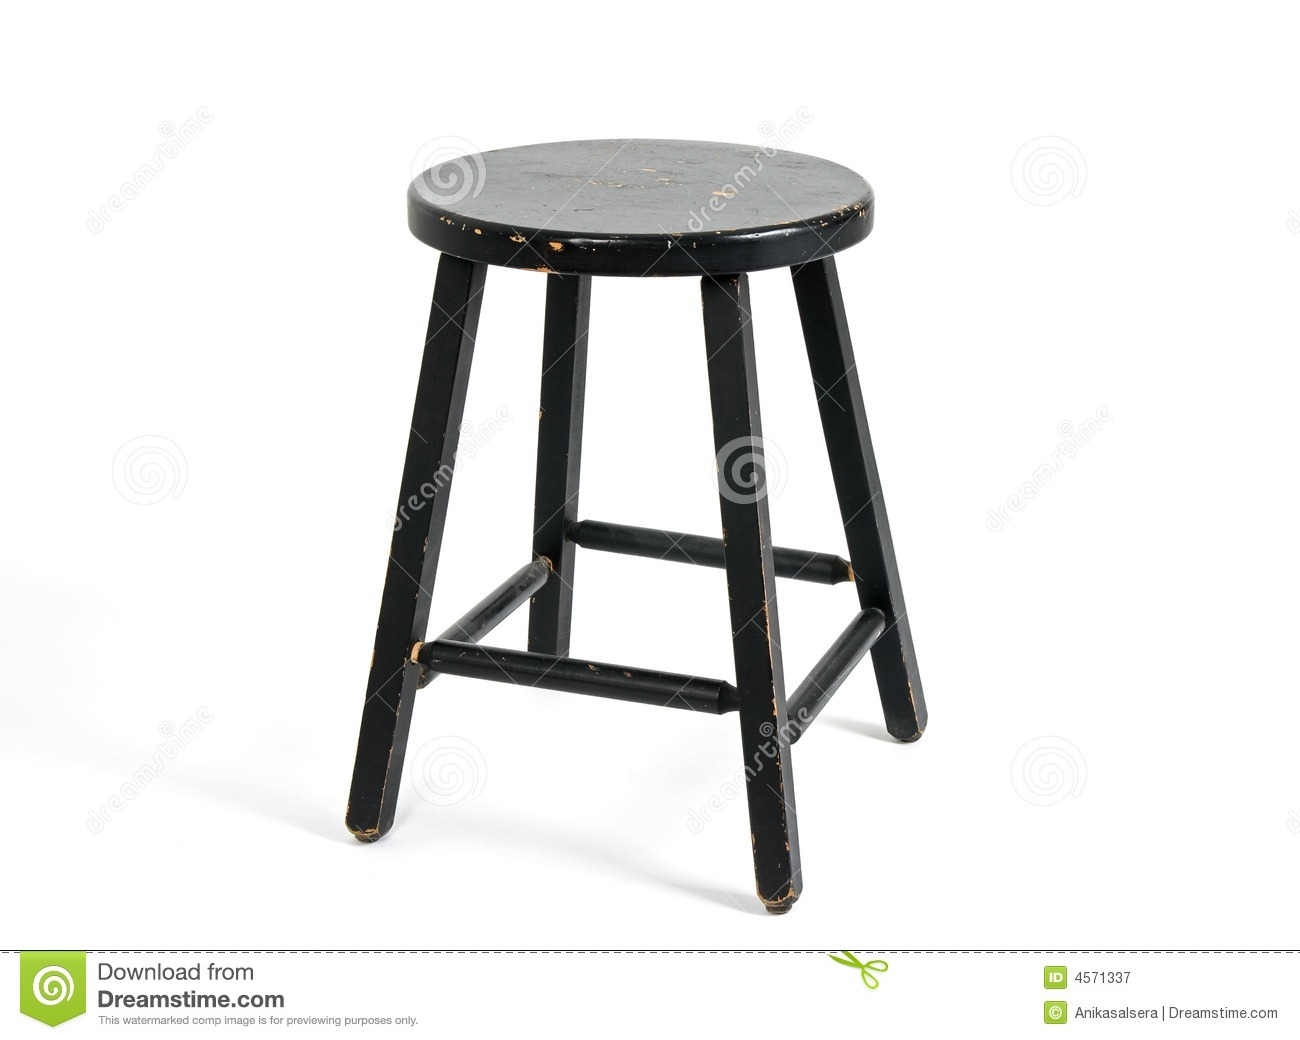 painted black wooden stool royalty free stock photography image 4571337. Black Bedroom Furniture Sets. Home Design Ideas